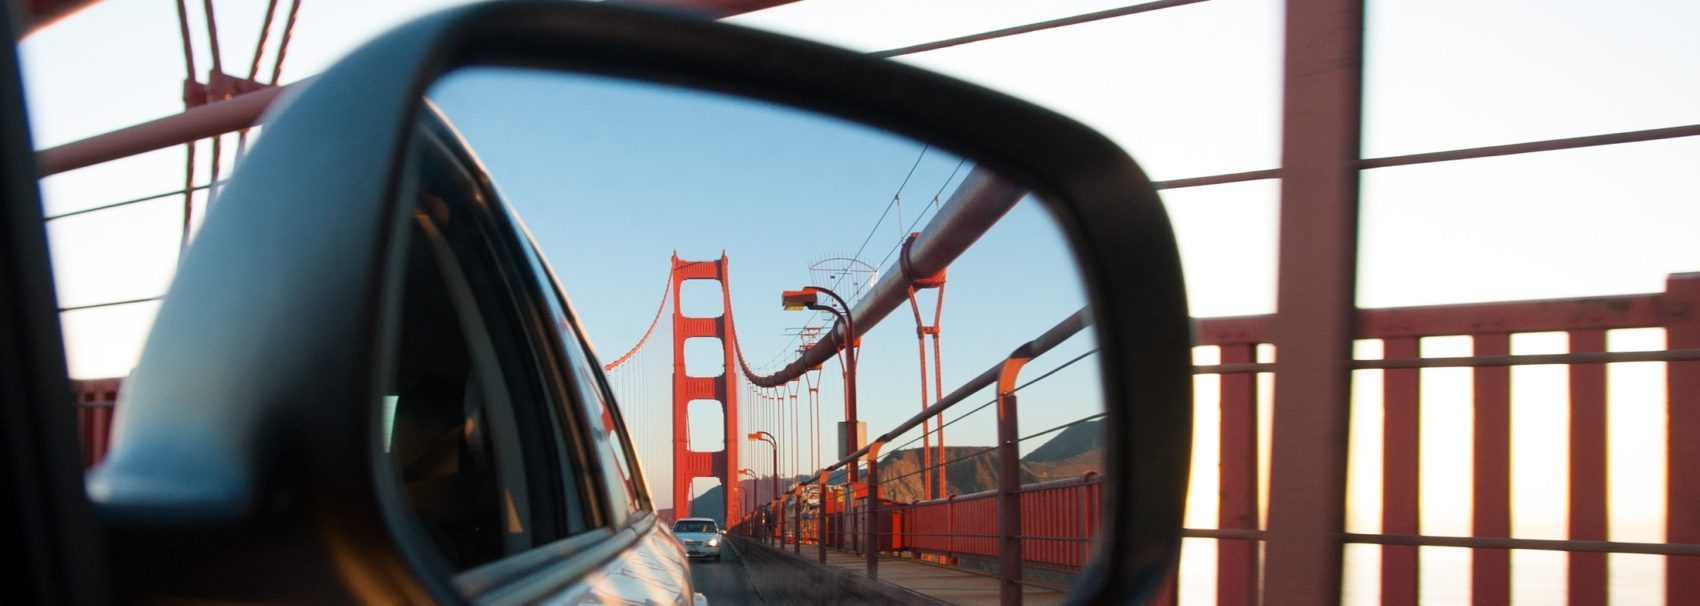 California Fly Drive Holidays 2019/2020 - Complete North ...